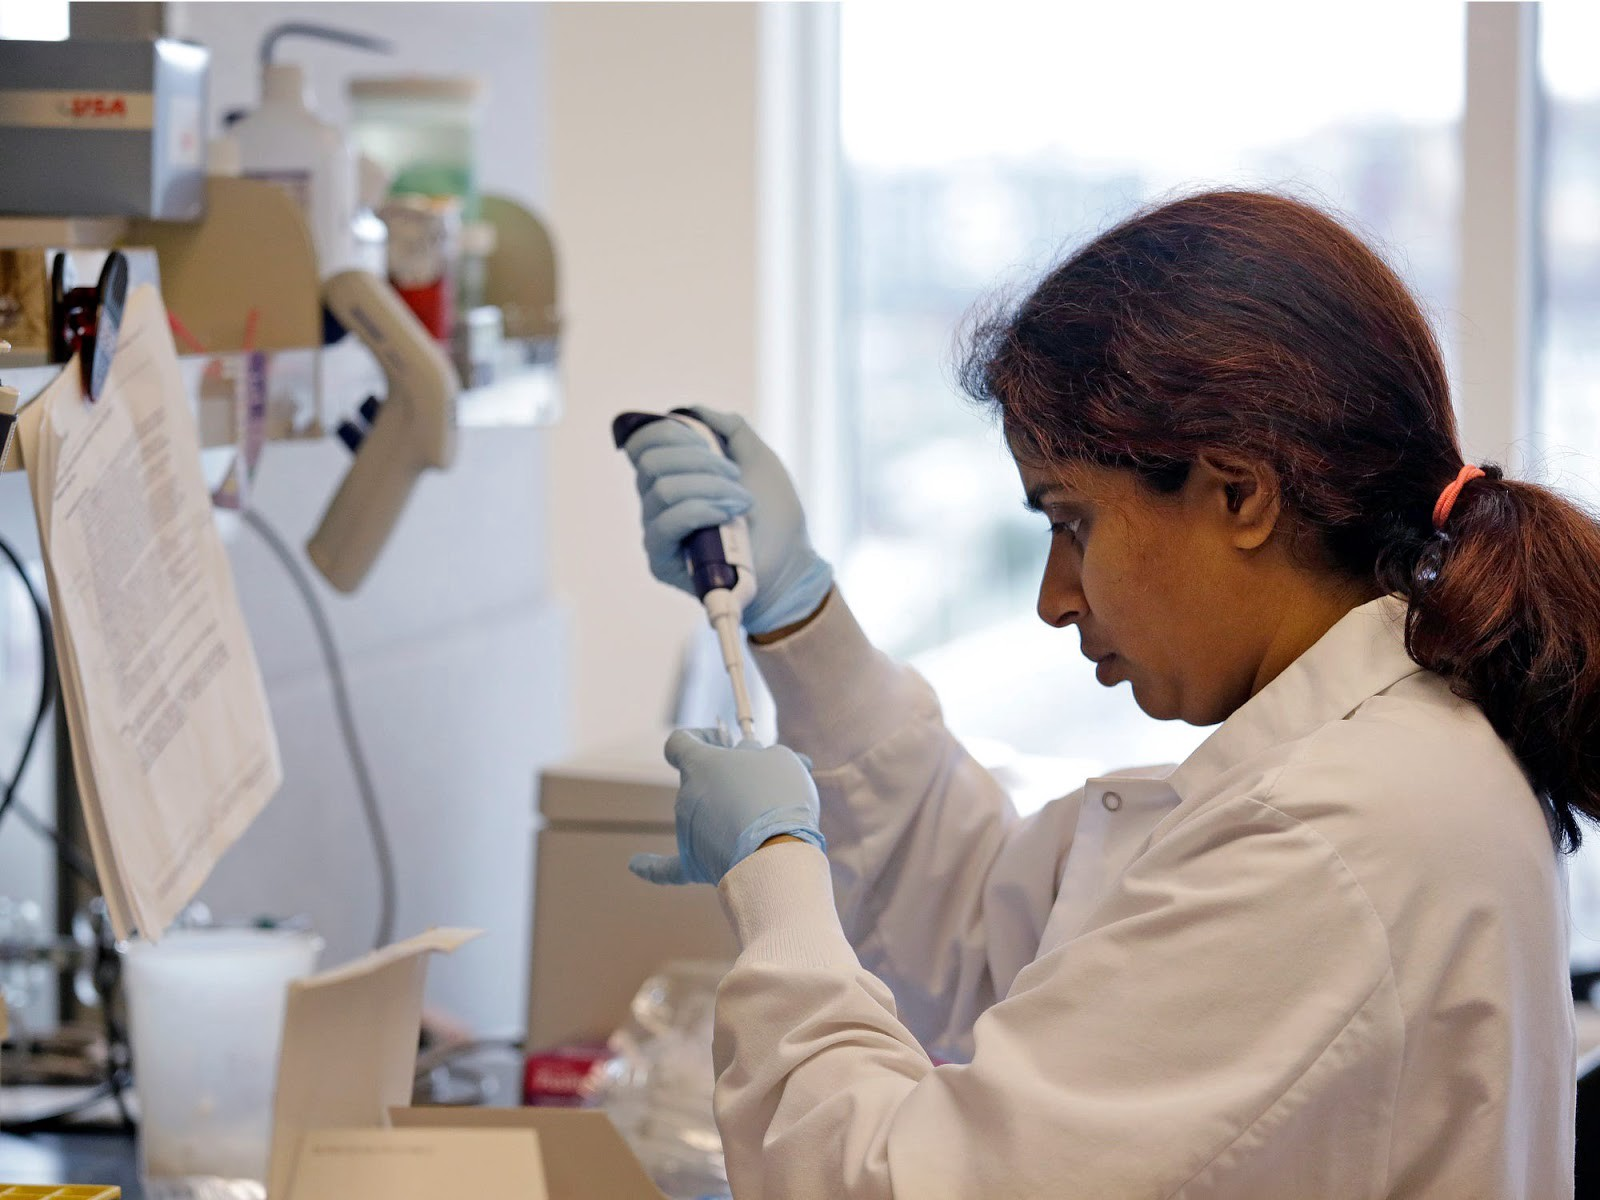 A research technician works in the immunotherapy research lab.